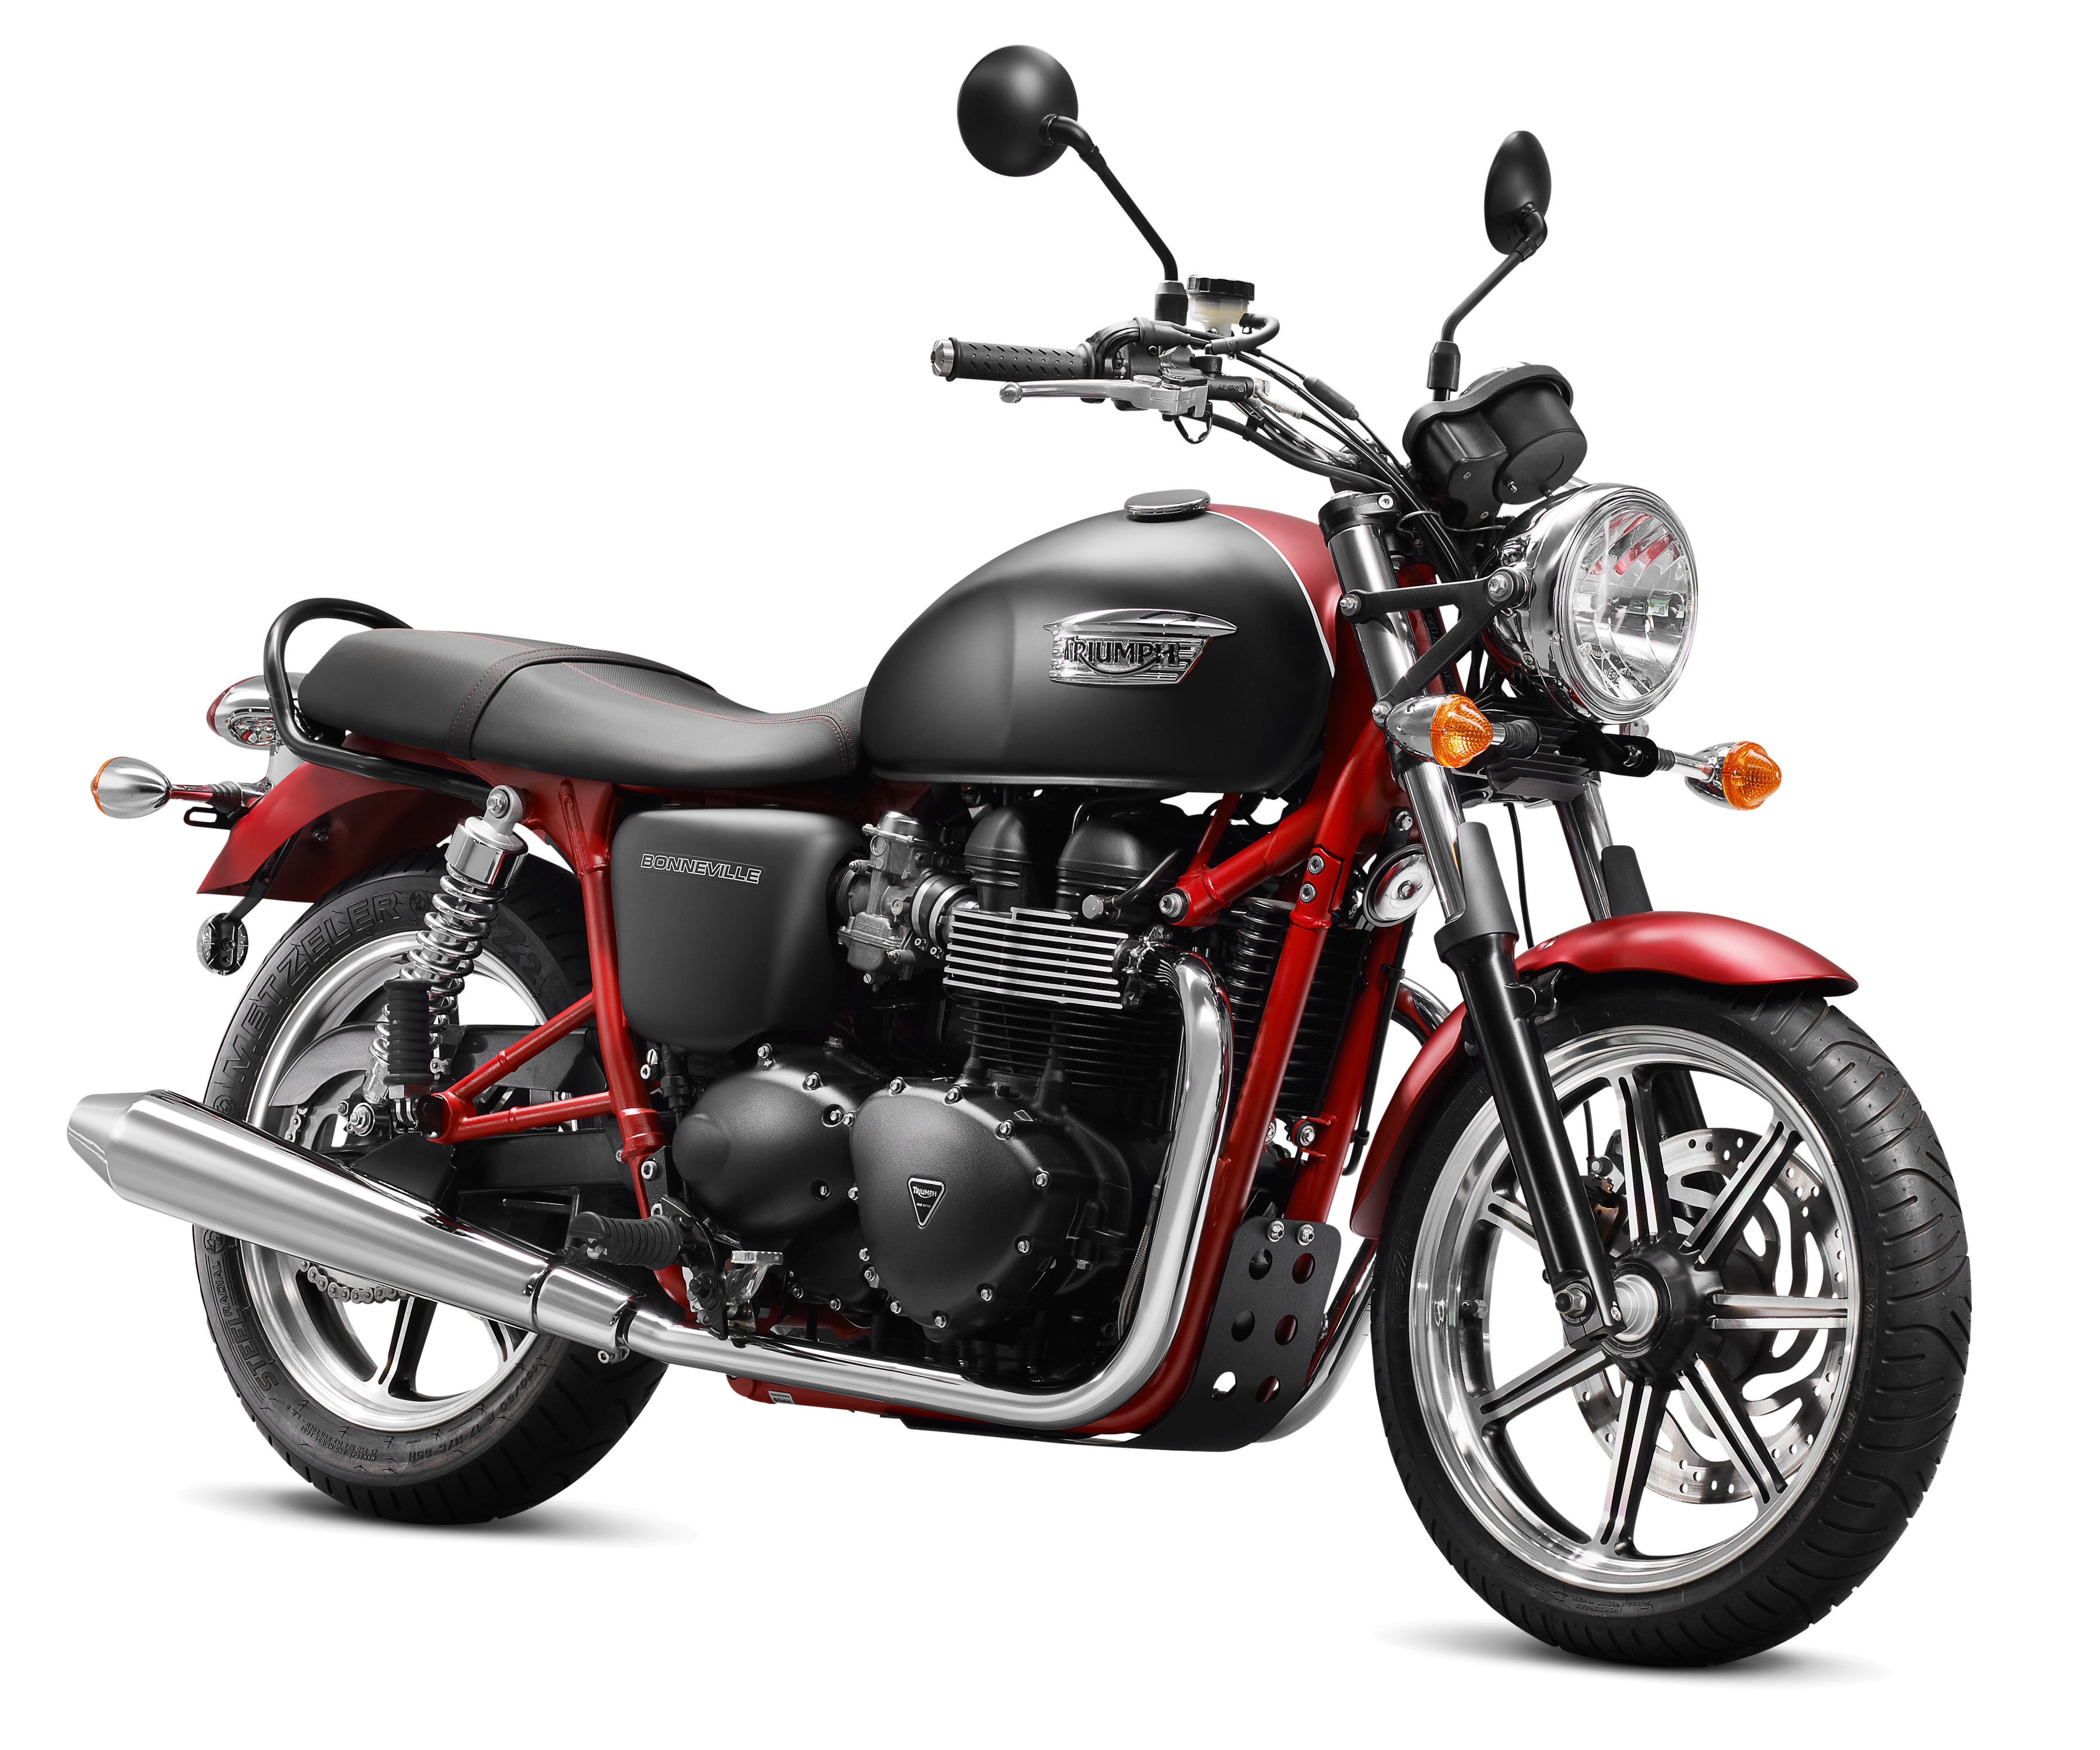 Png download free transparent. Motorcycle clipart cruiser motorcycle